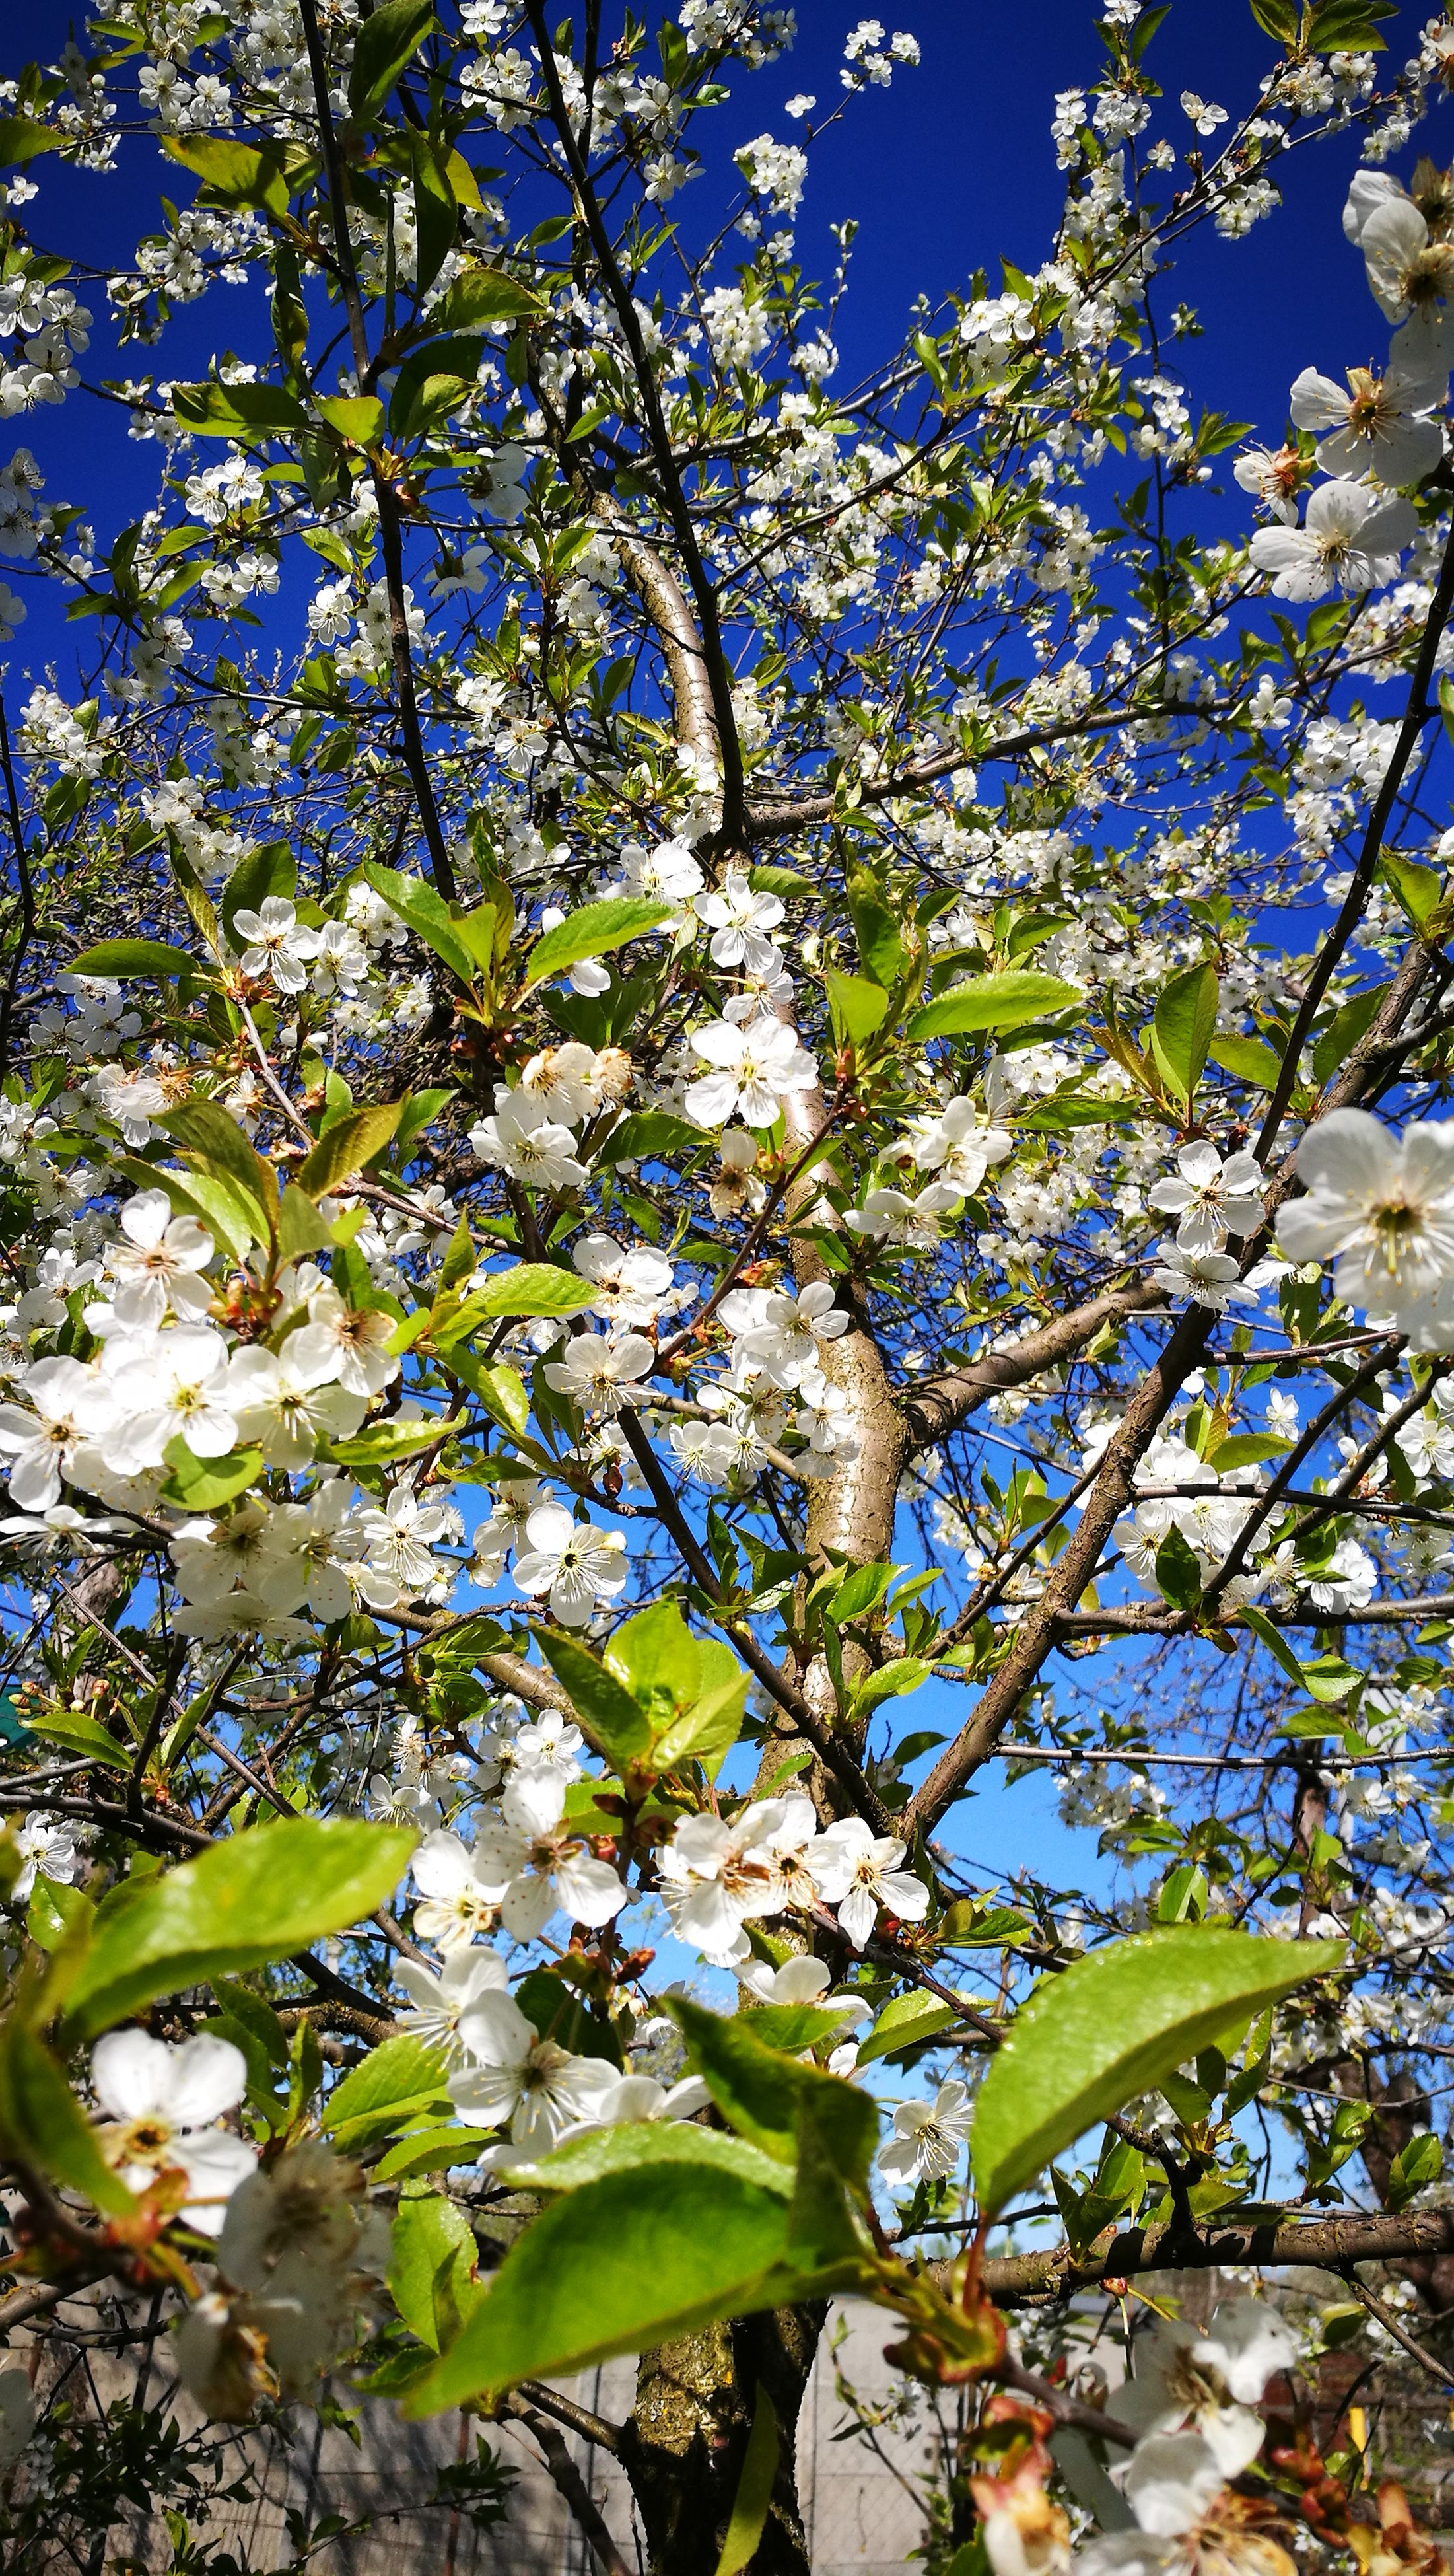 flower, growth, blossom, tree, fragility, nature, springtime, branch, beauty in nature, freshness, apple blossom, botany, no people, low angle view, day, petal, sunlight, spring, outdoors, close-up, flower head